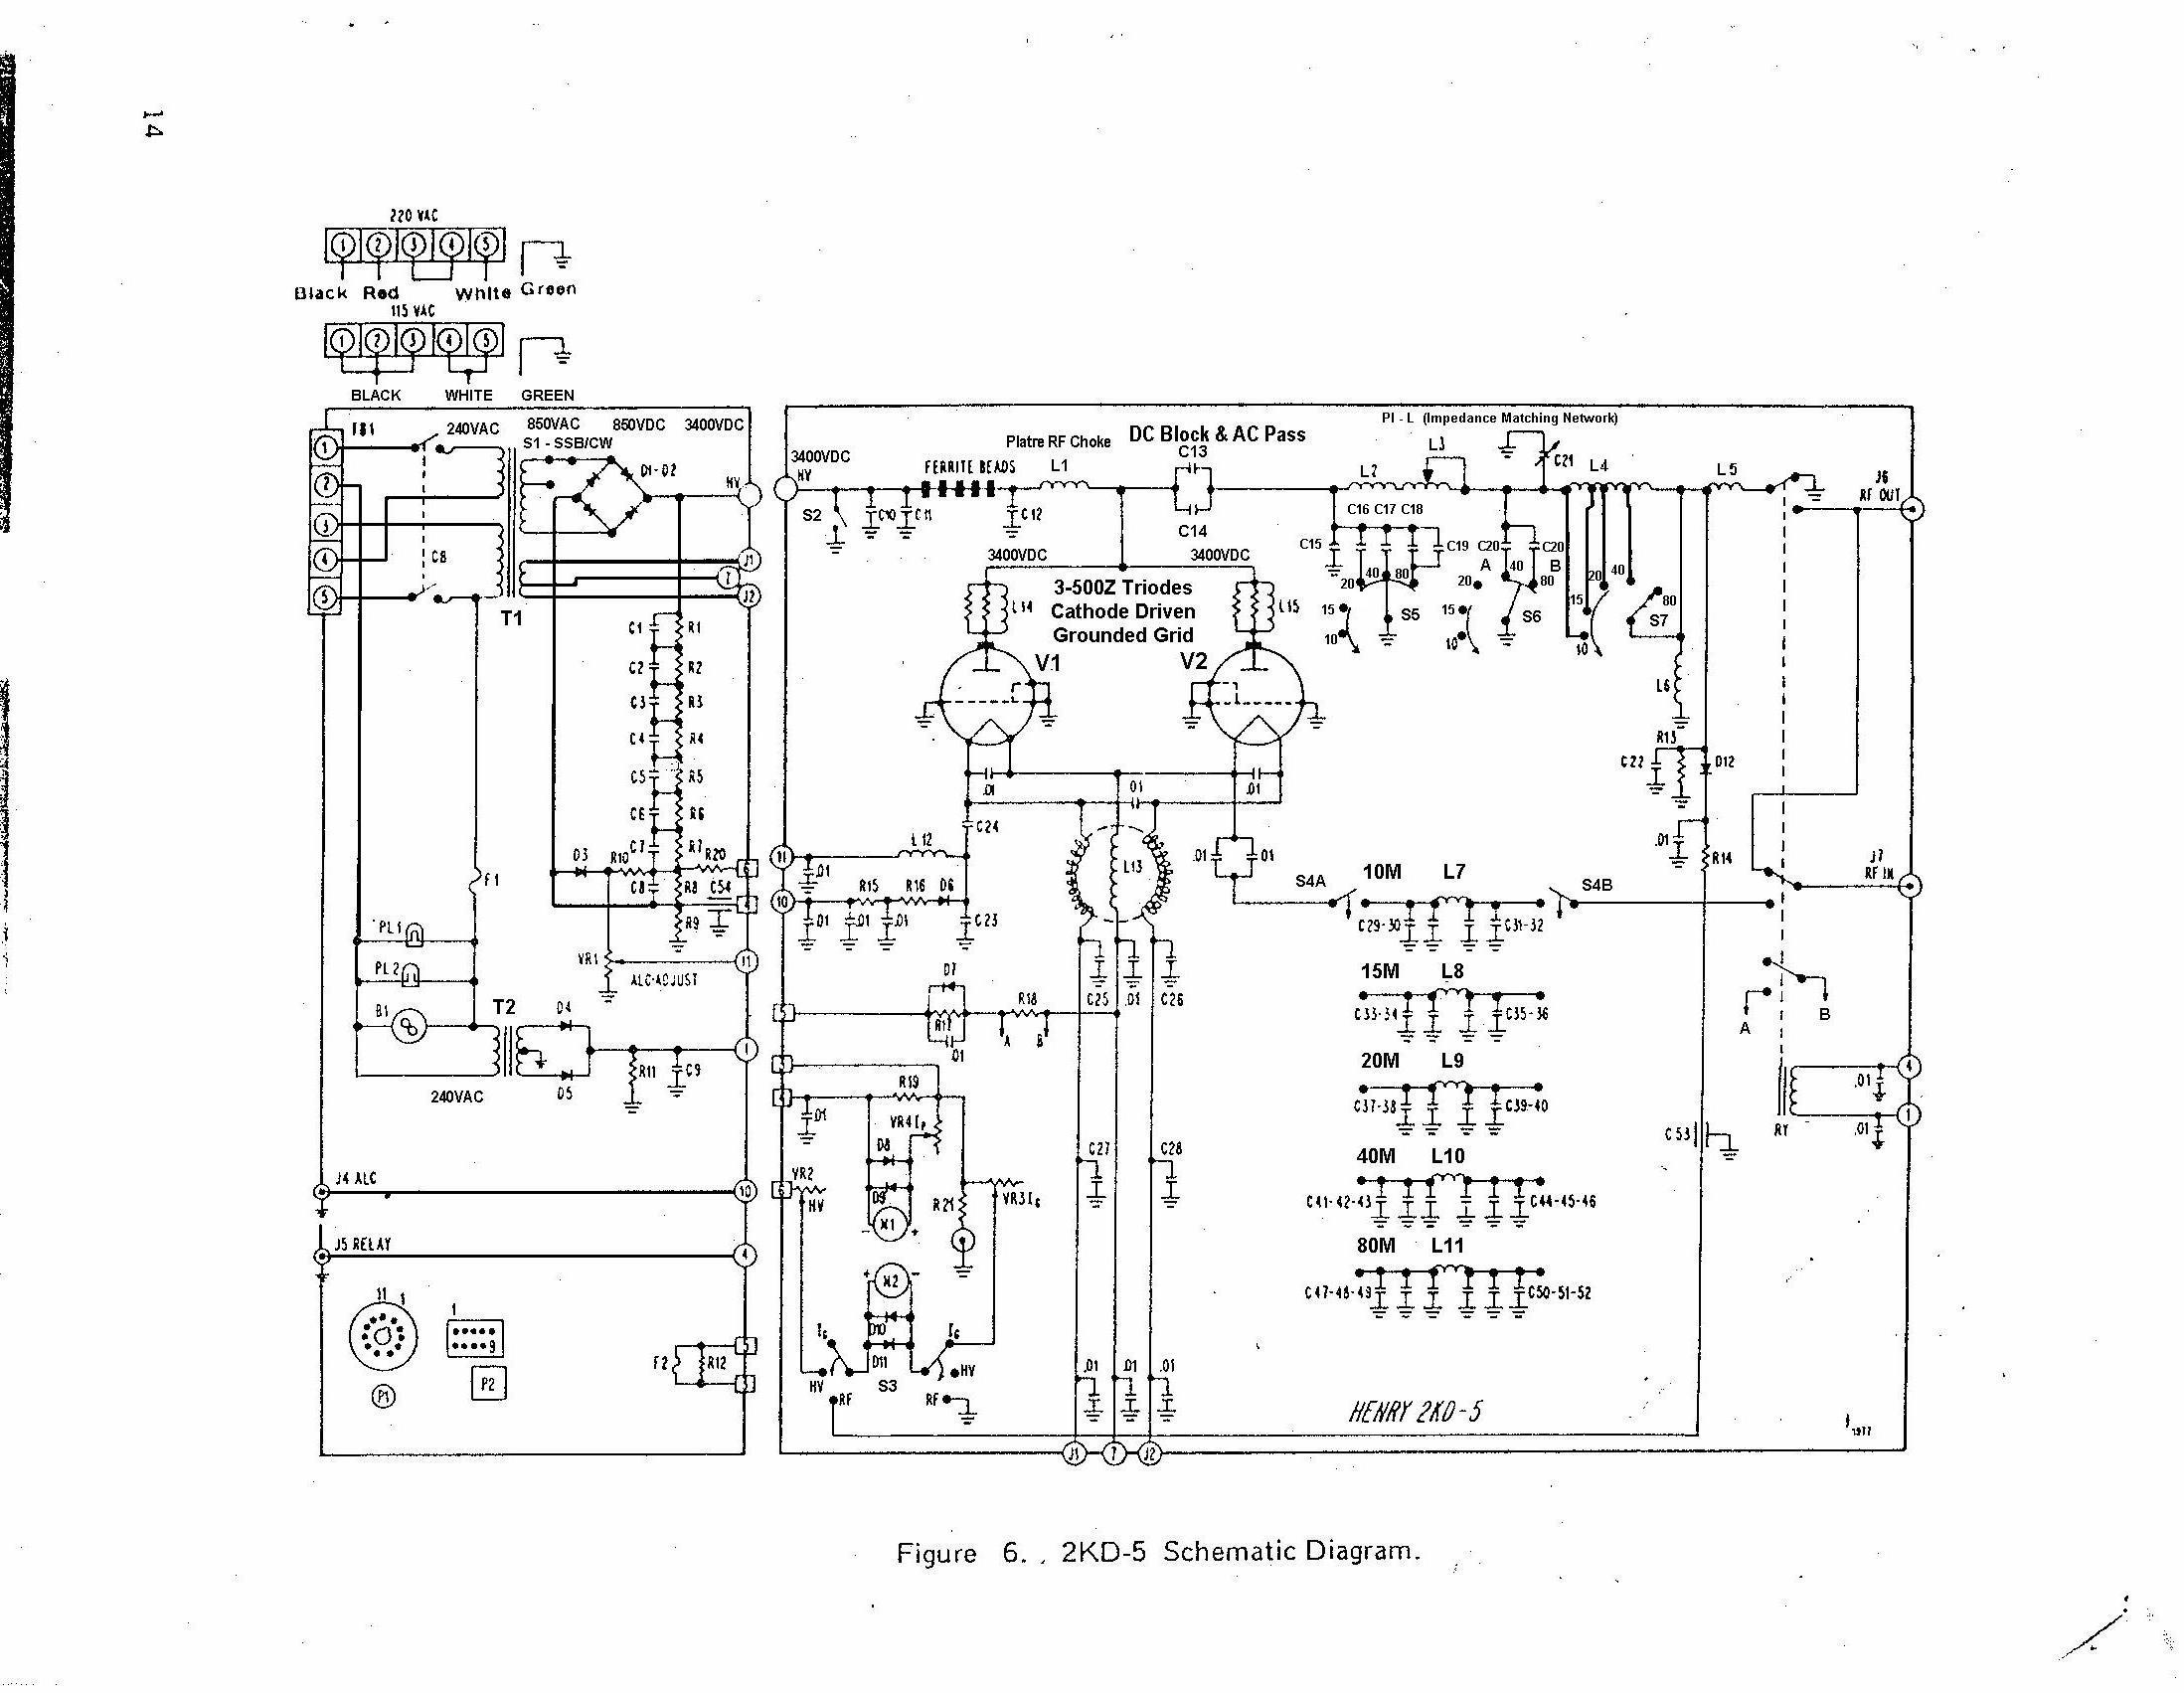 Rfpa Schematic Diagram Henry 2kd 5